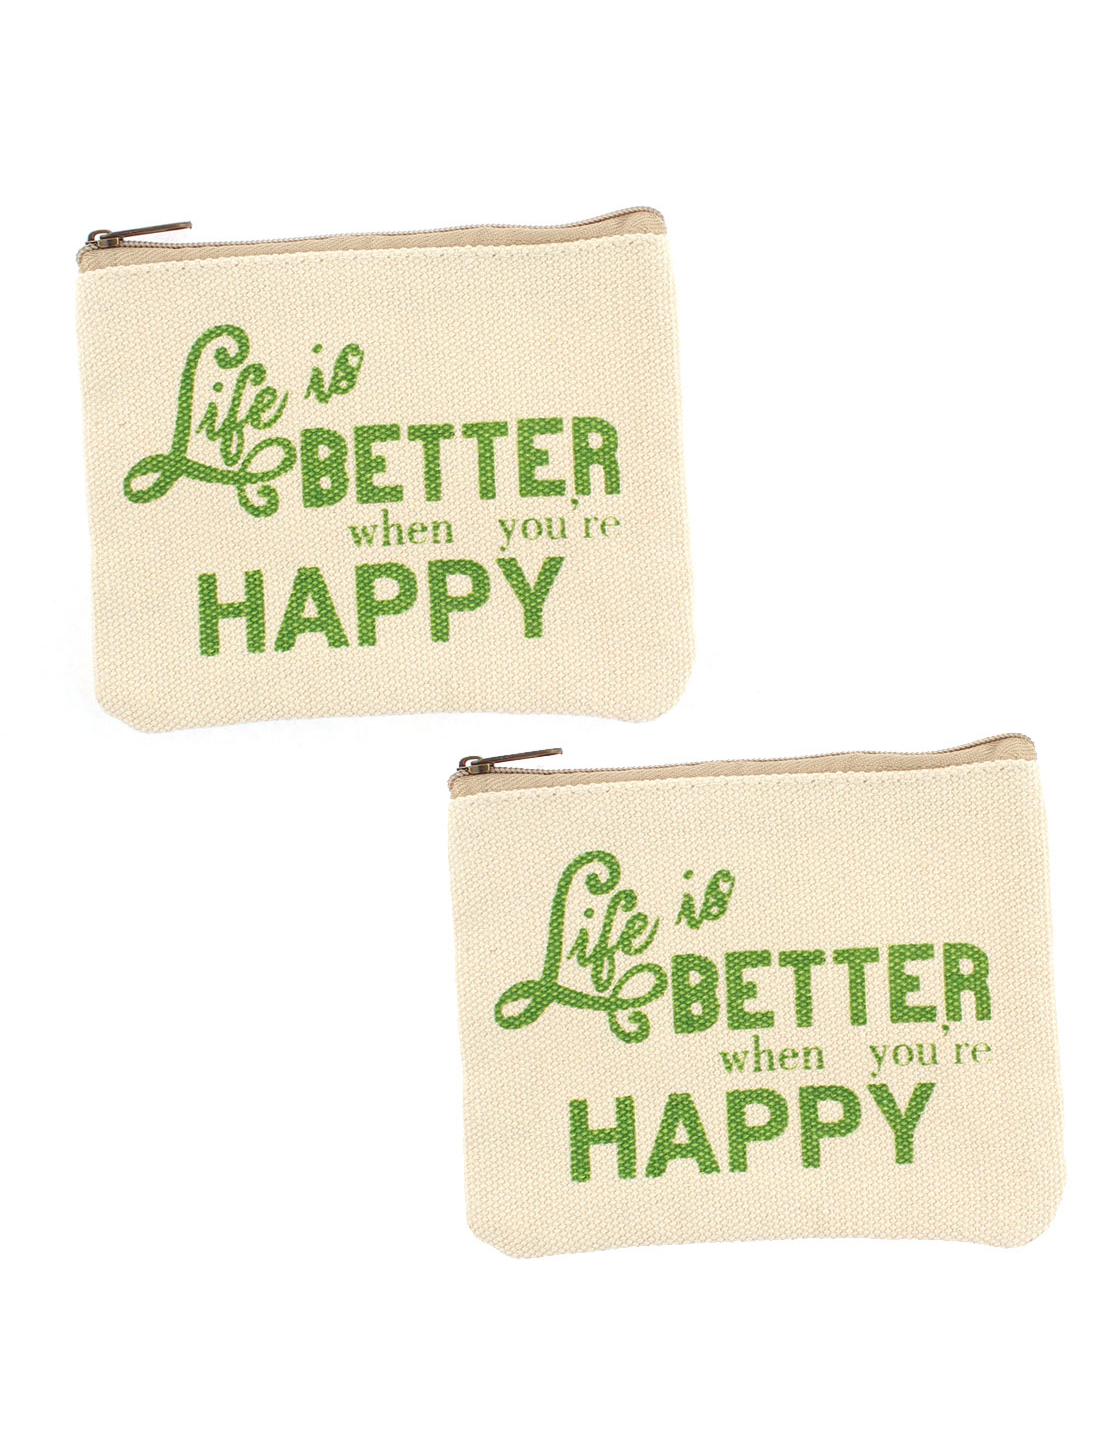 English Sentence Pattern Zippered Card Coin Change Key Bag Wallet Pouch 2pcs